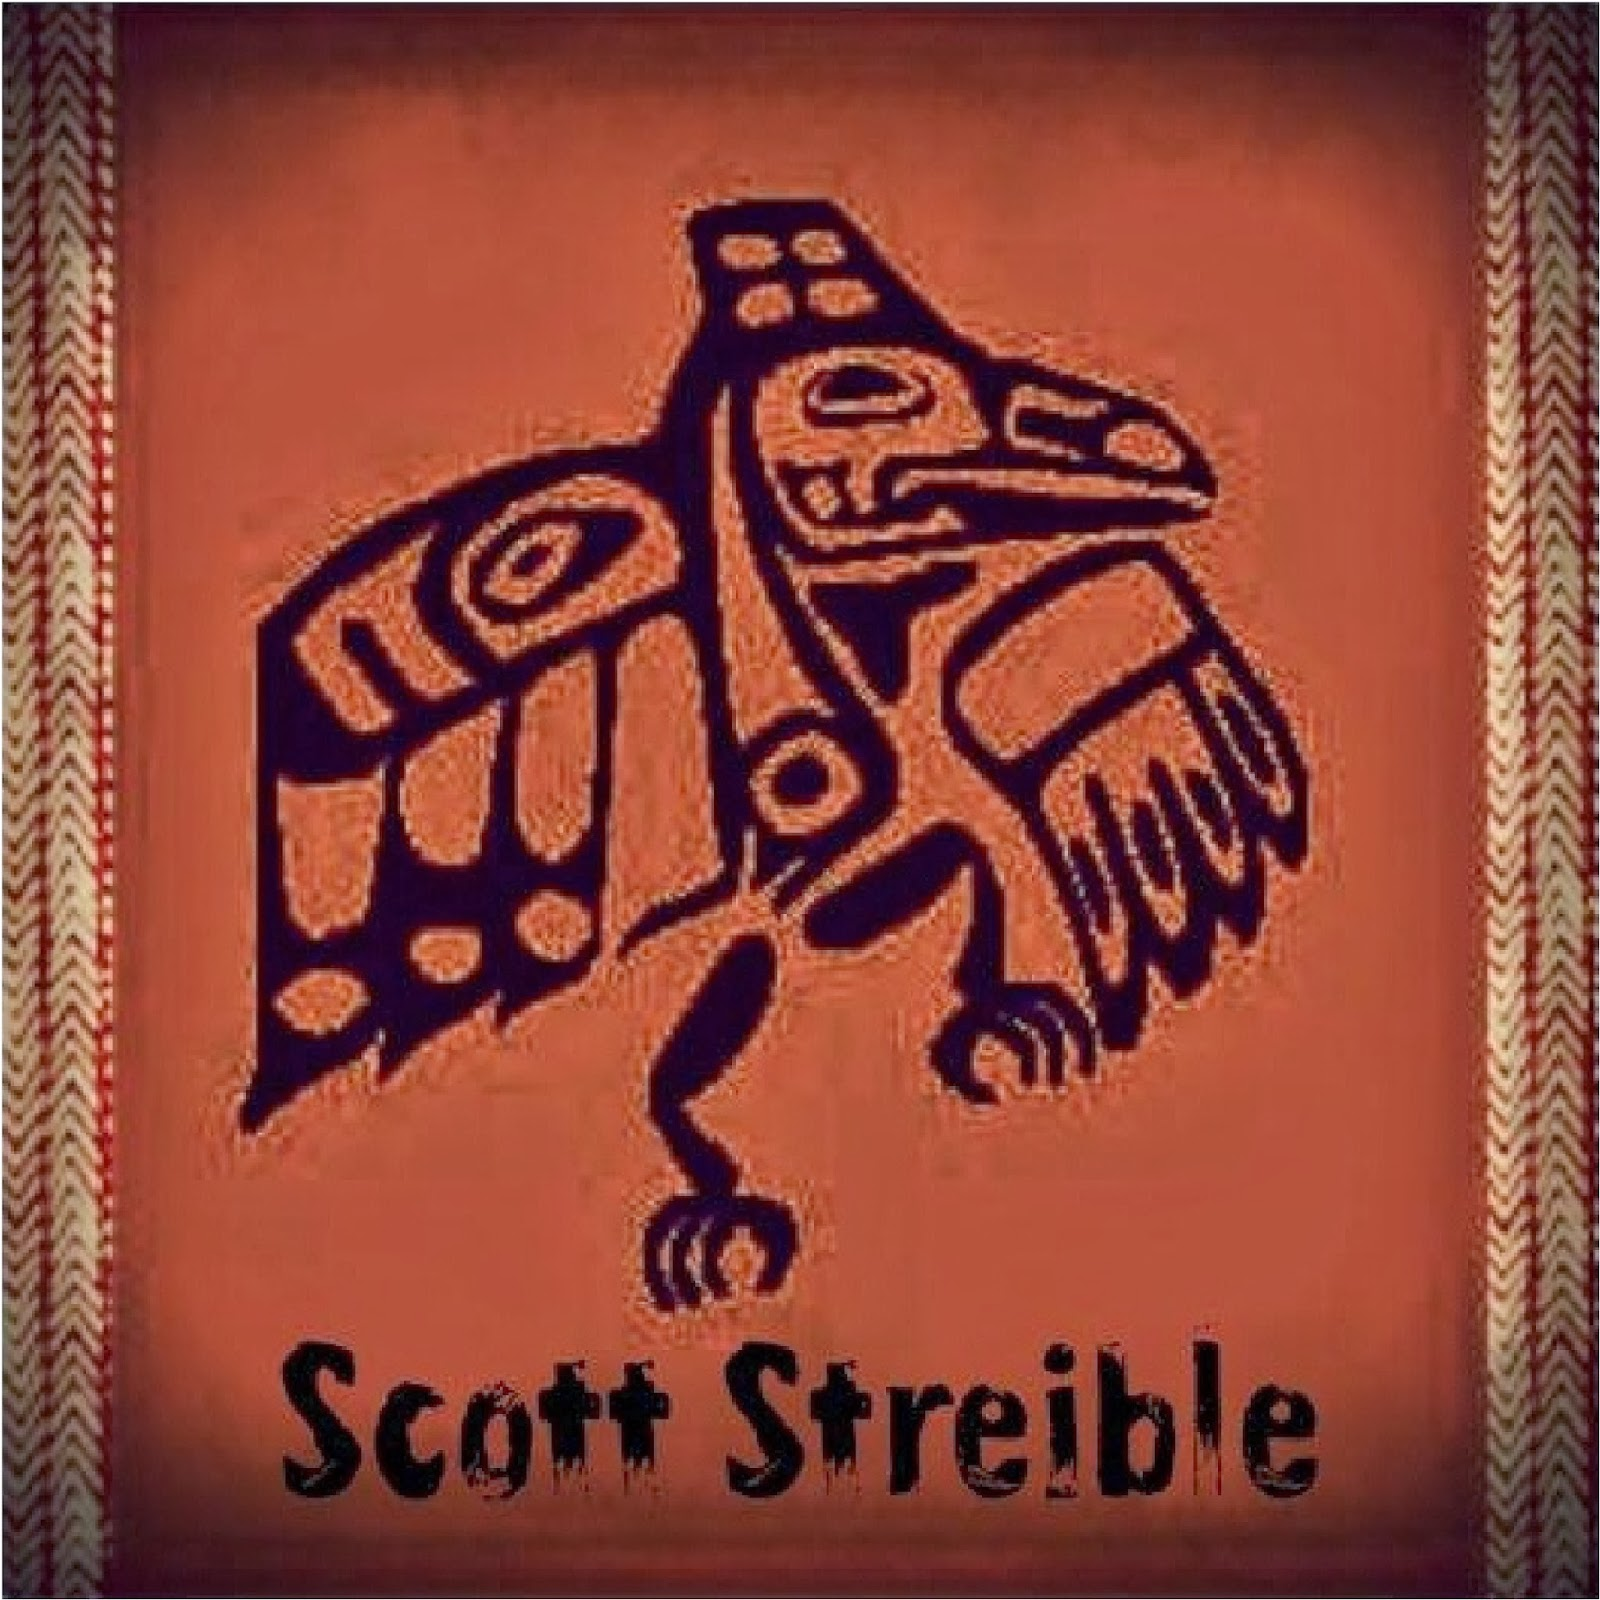 Scott Streible